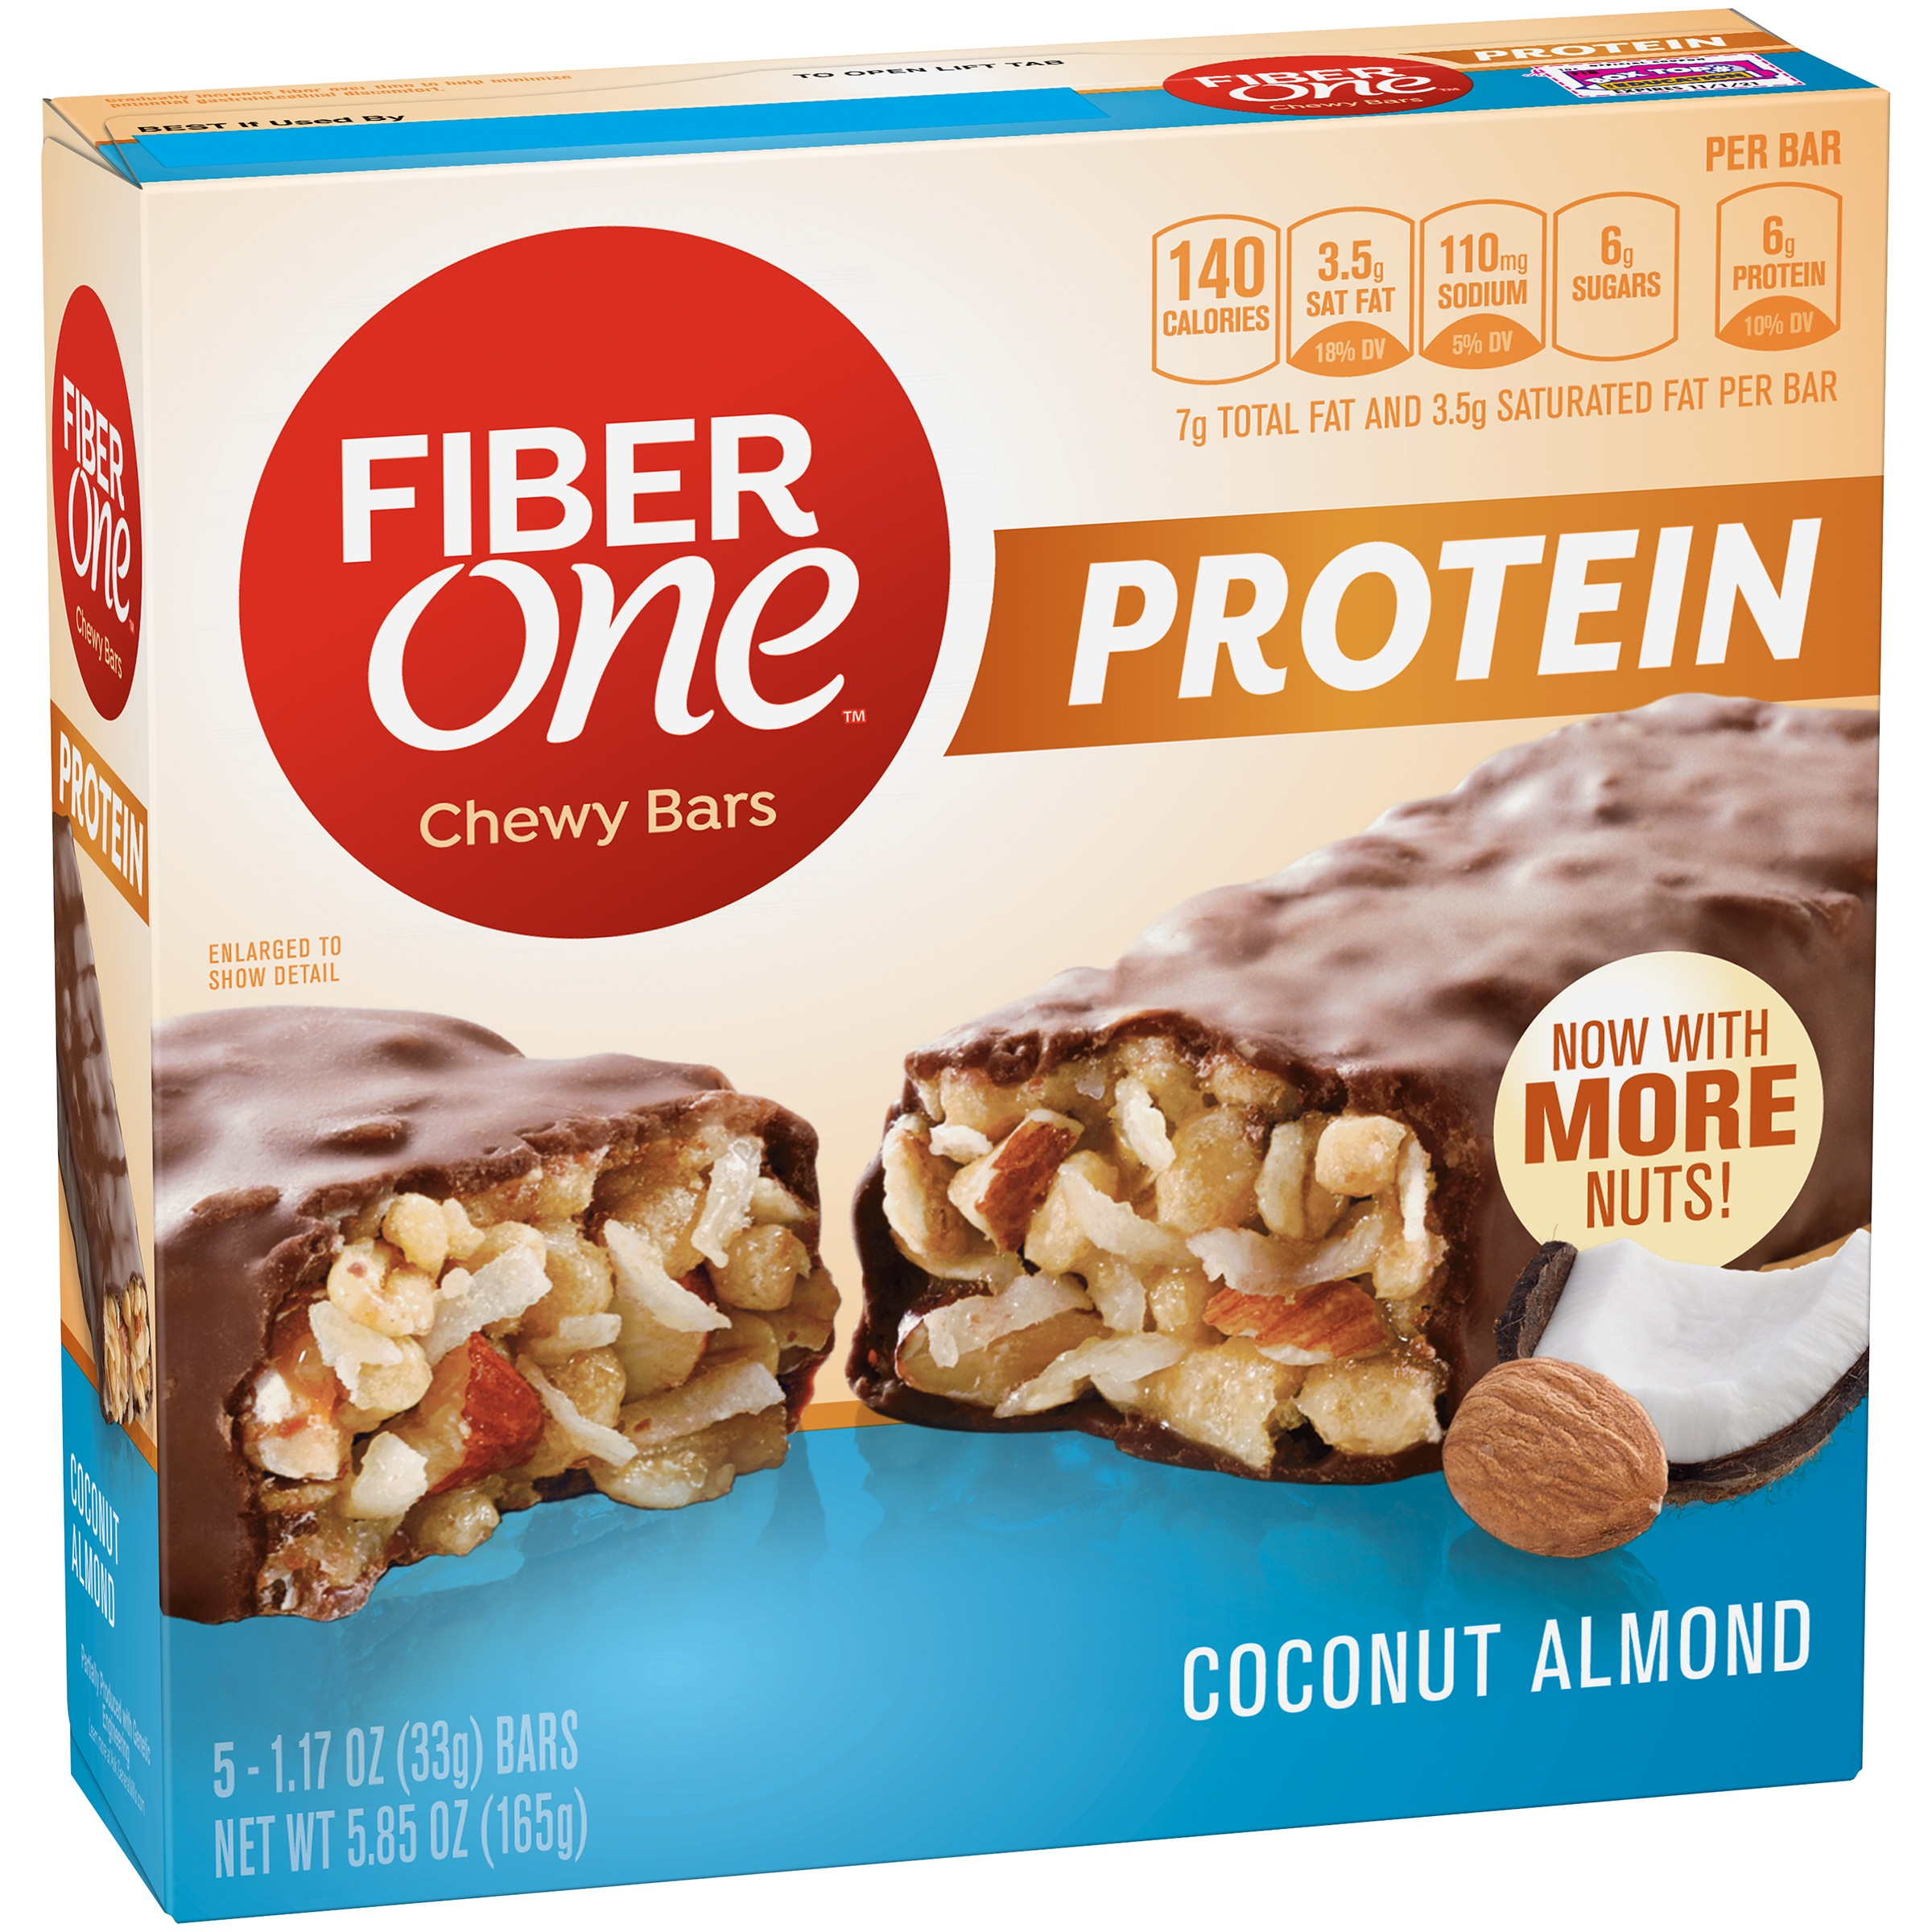 Fiber One Protein Chewy Bar Coconut Almond 5 - 1.17 oz Bars